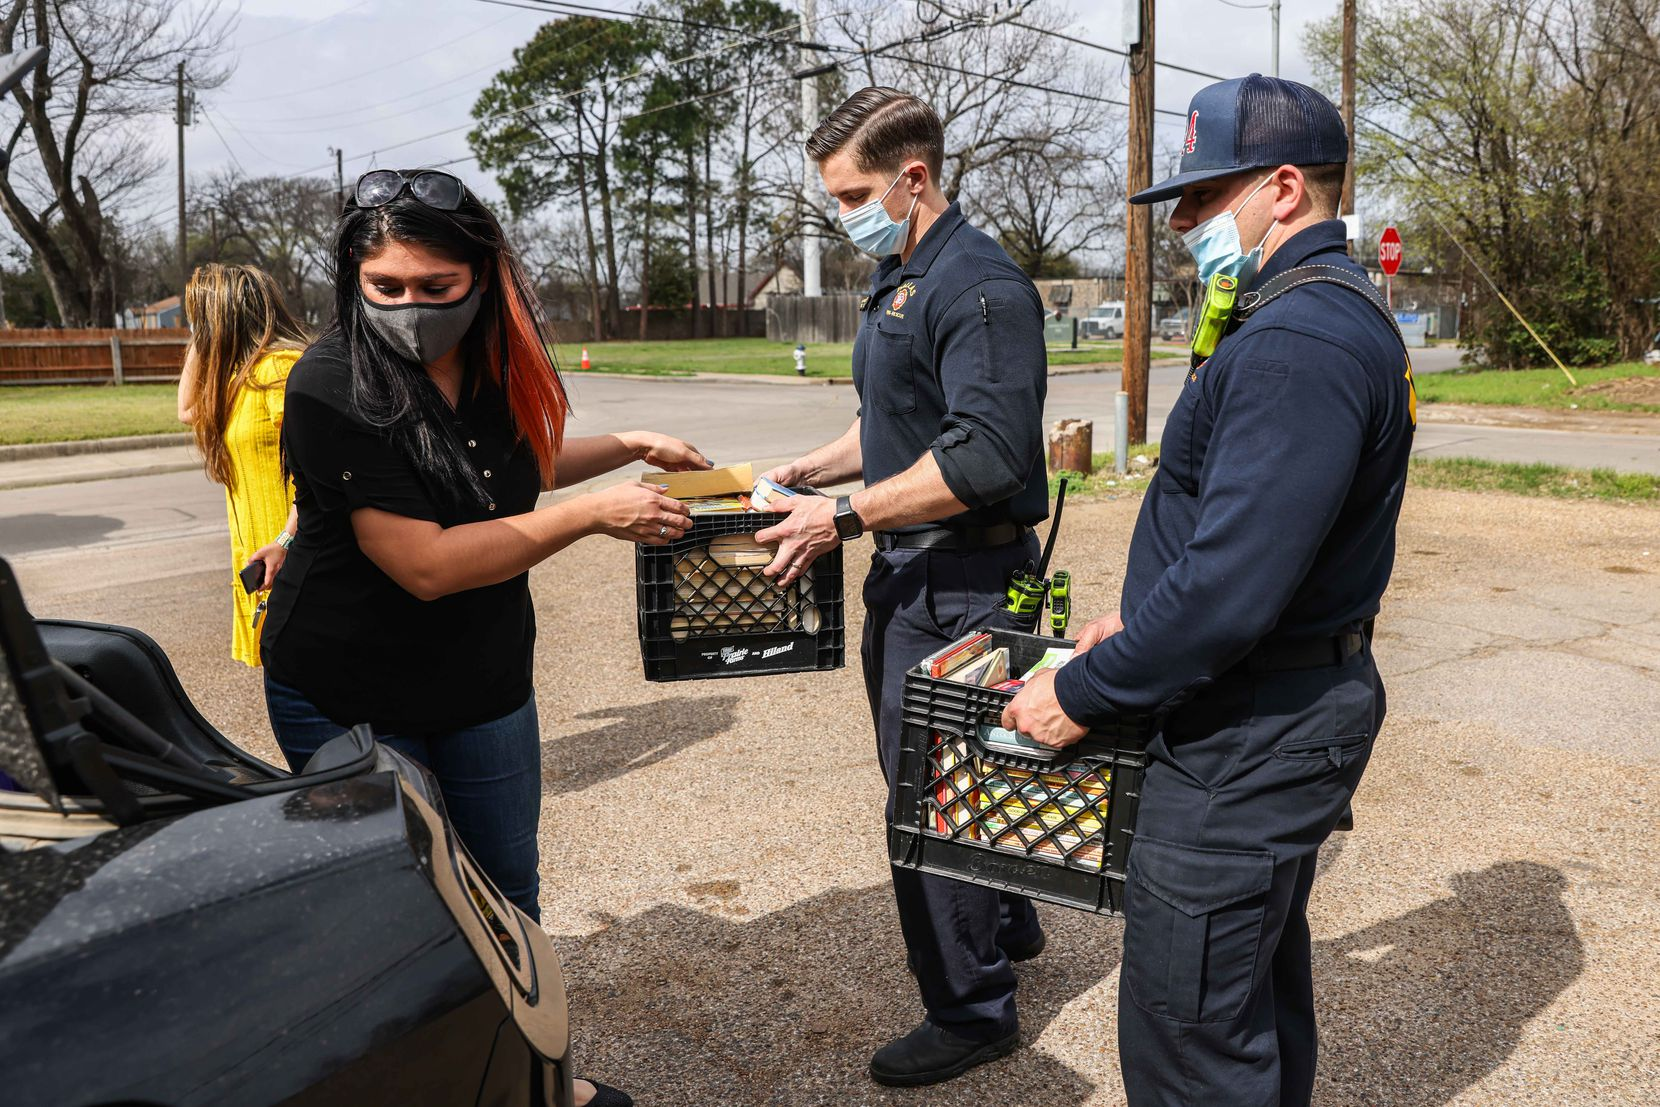 Aidee Lomeli of Fort Worth, enlists the help of firefighters Will Tabor and Richard Courts of Dallas Fire Station 24 to bring donated books to Allen's, a South Dallas grocery store, on Tuesday, March 16, 2021 (Lola Gomez / The Dallas Morning News)